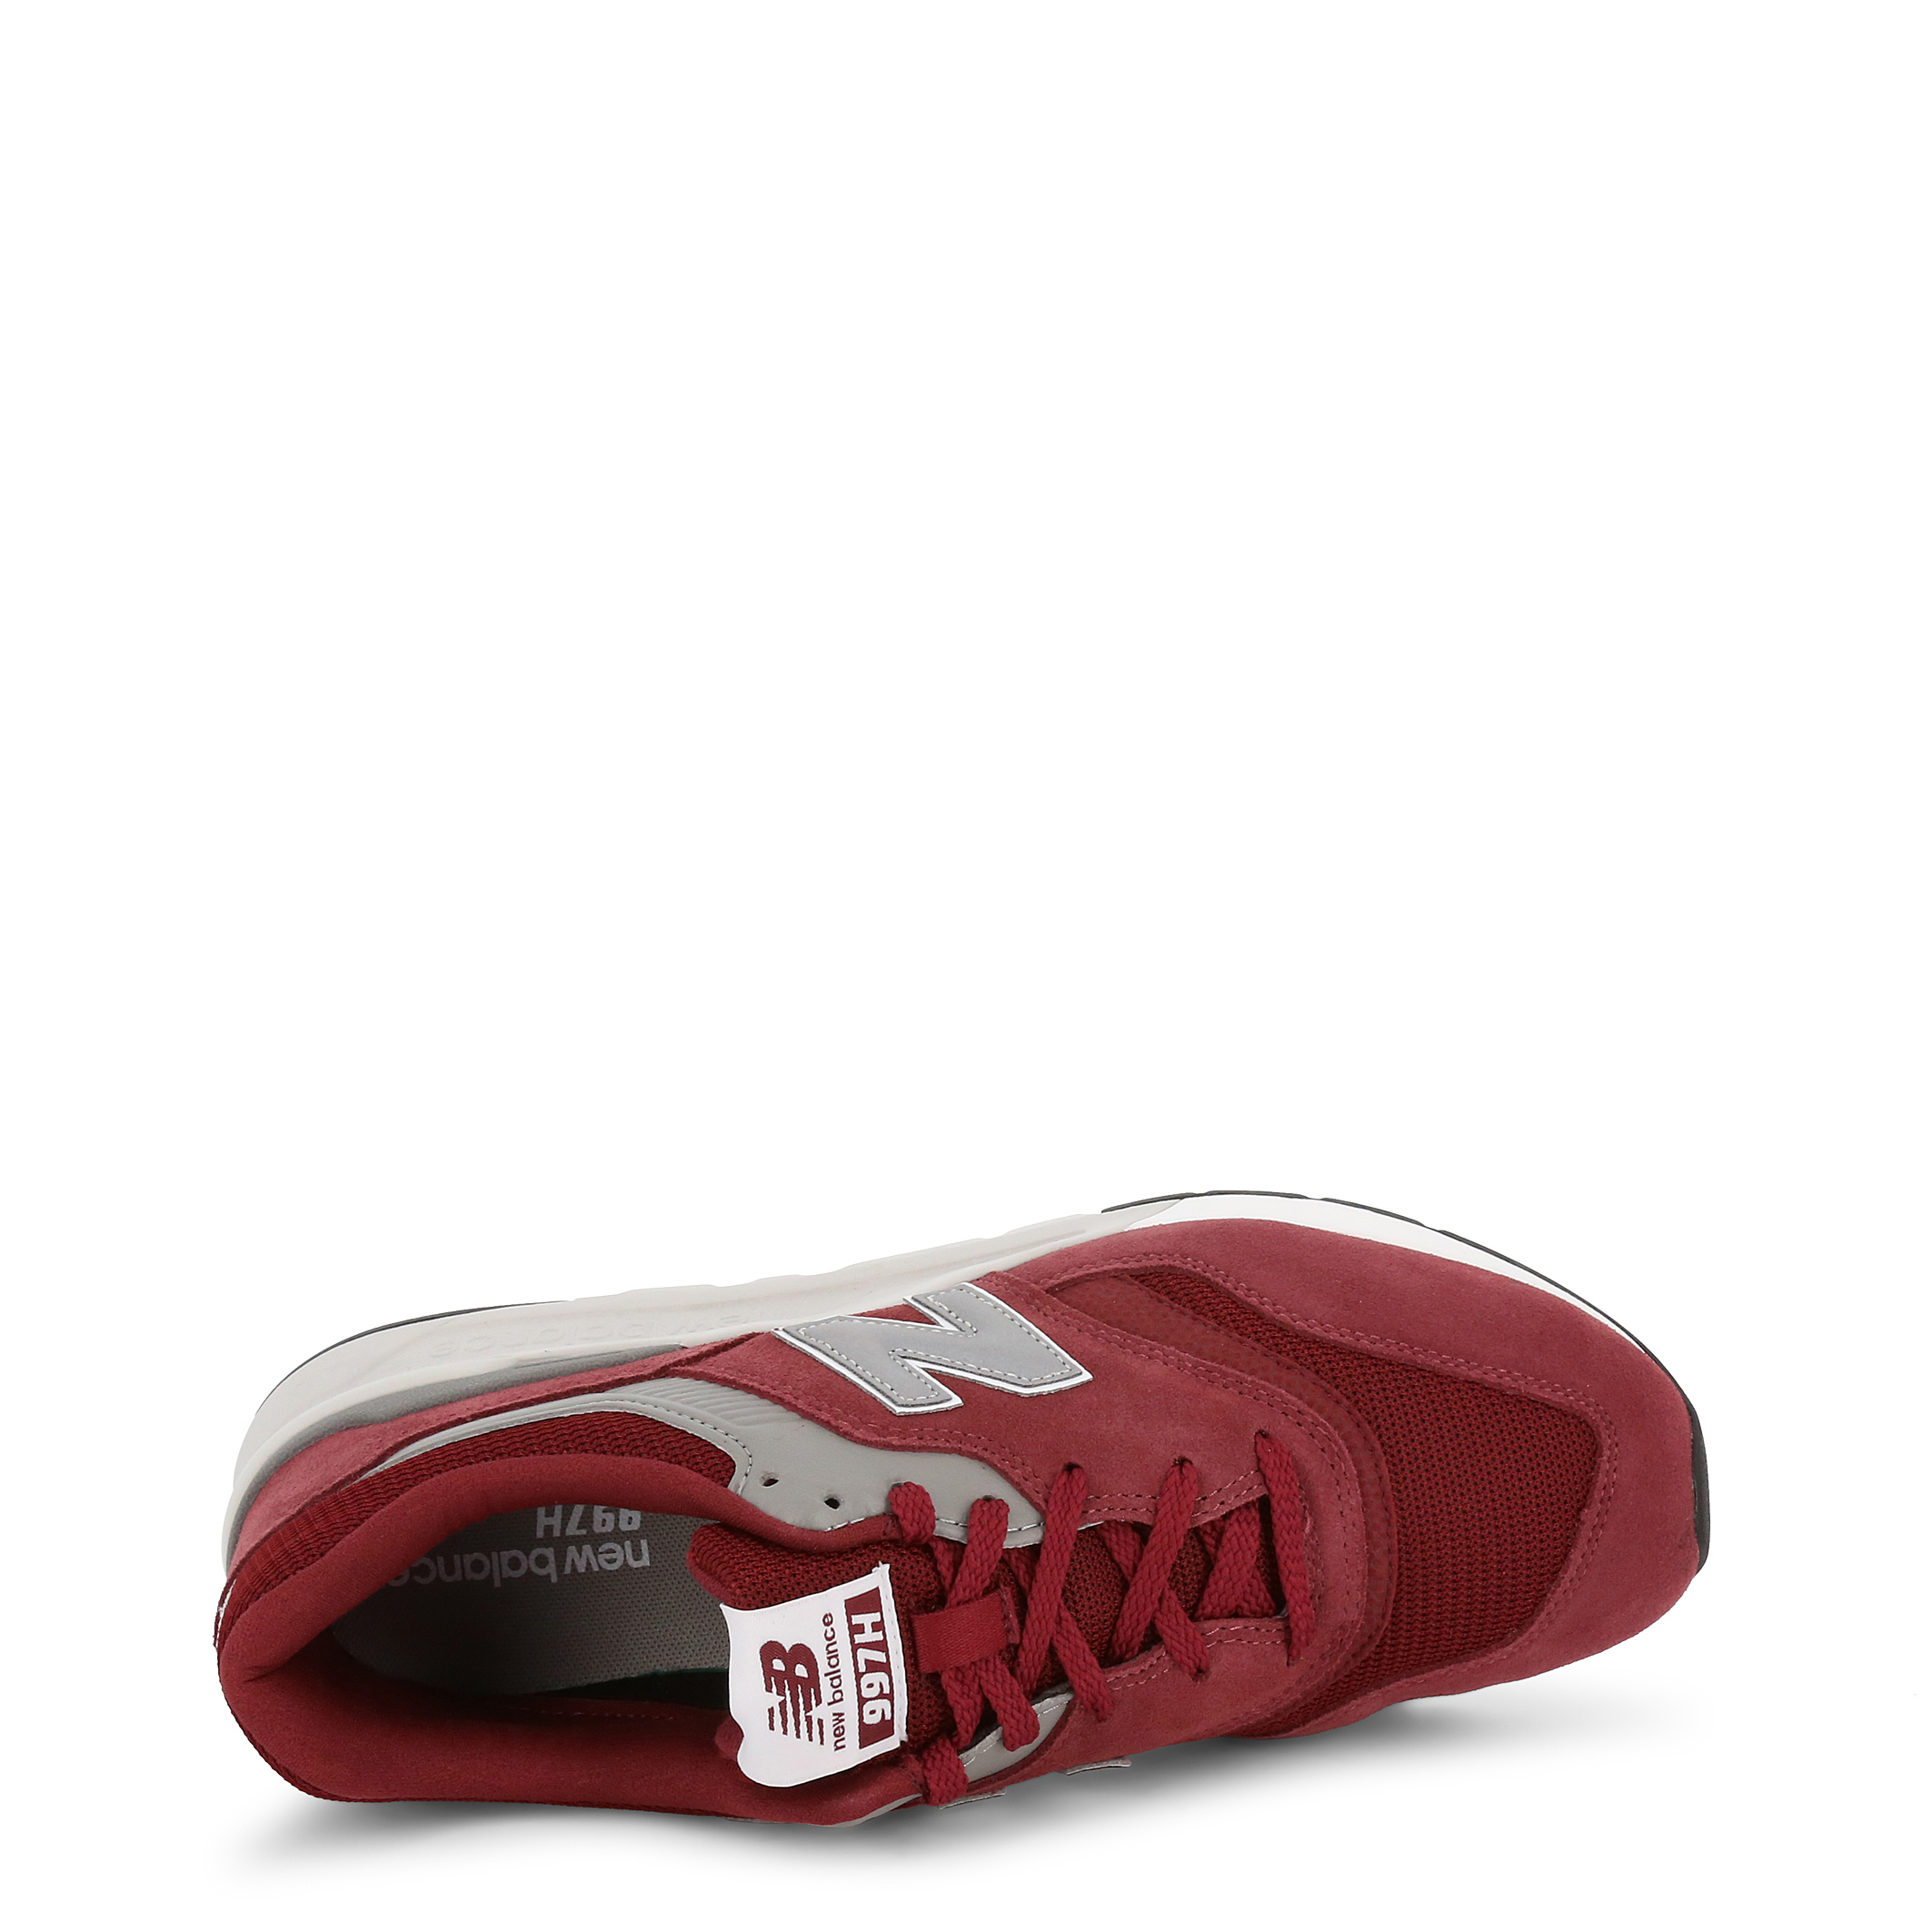 Baskets / Sport  New balance CM997 red